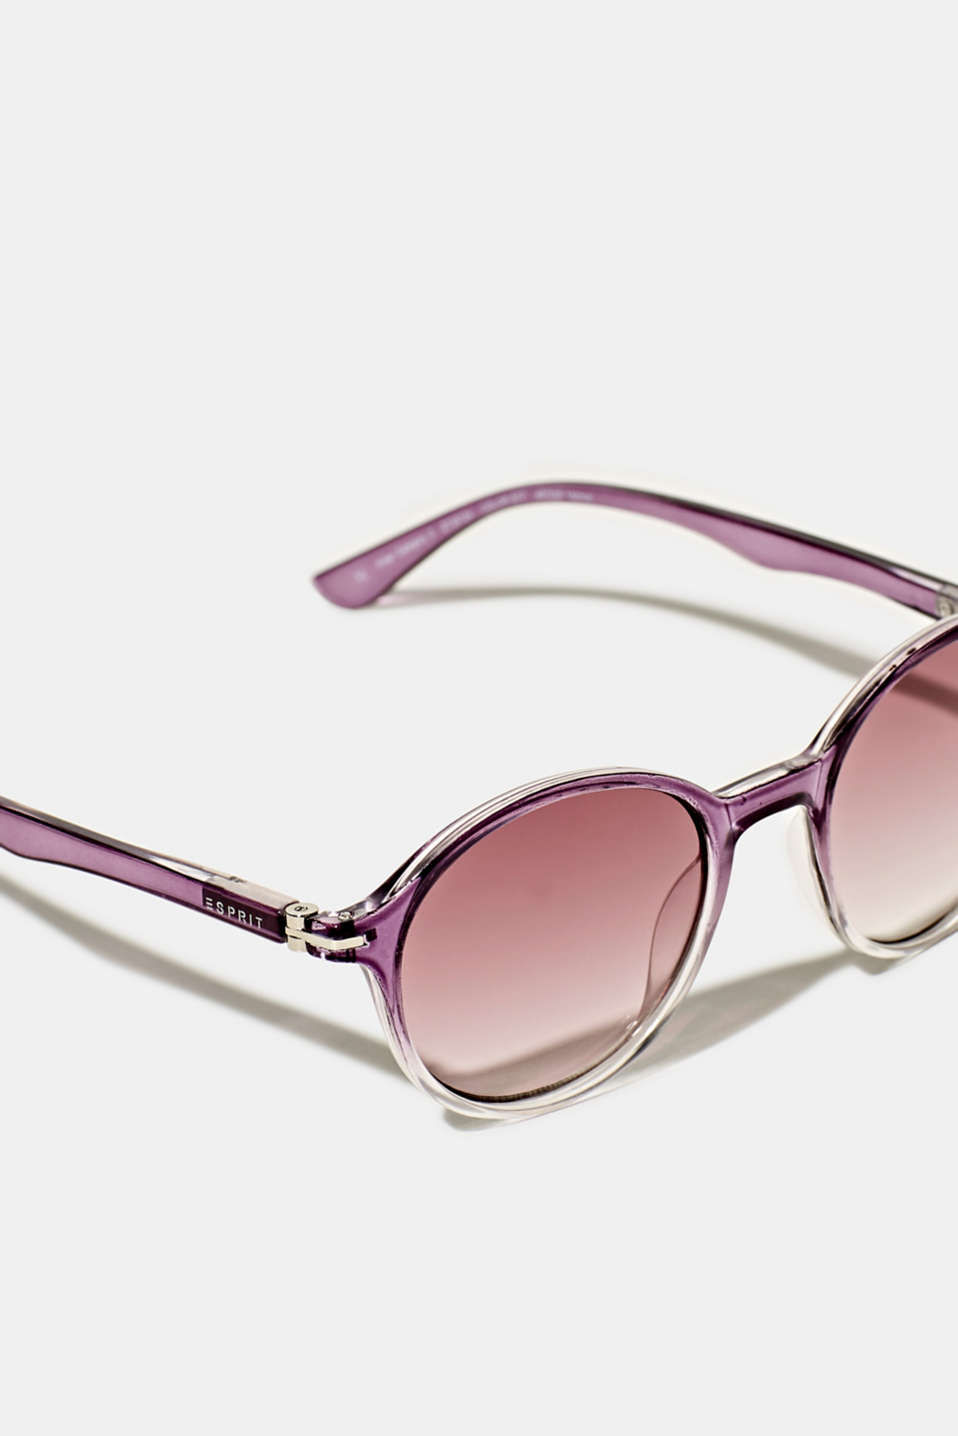 Sunglasses with transparent frame, LCPURPLE, detail image number 1